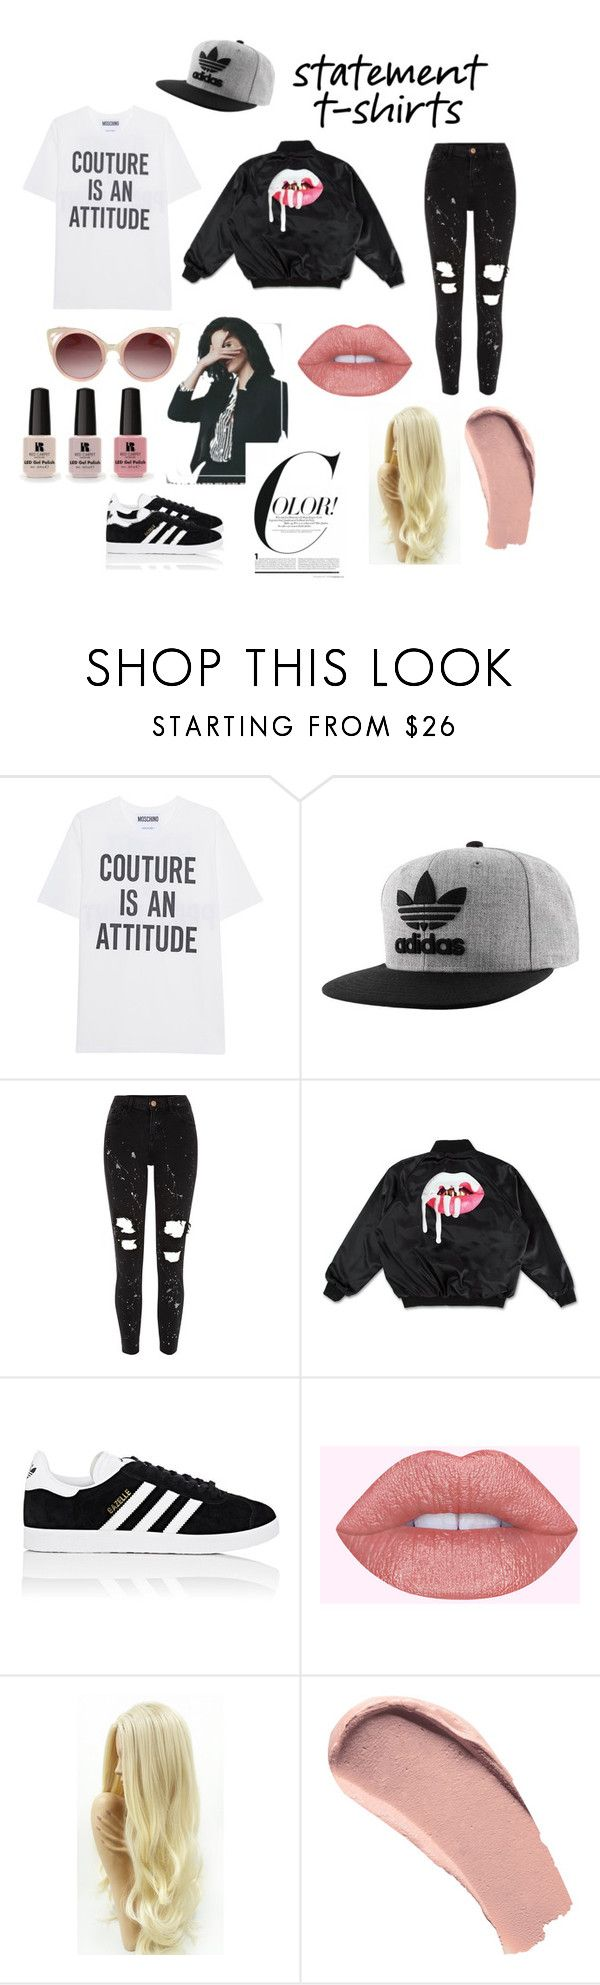 """""""fake ppl showin fake luv"""" by queen-vic ❤ liked on Polyvore featuring Moschino, adidas Originals, River Island, adidas, Burberry, WithChic and Victoria's Secret"""